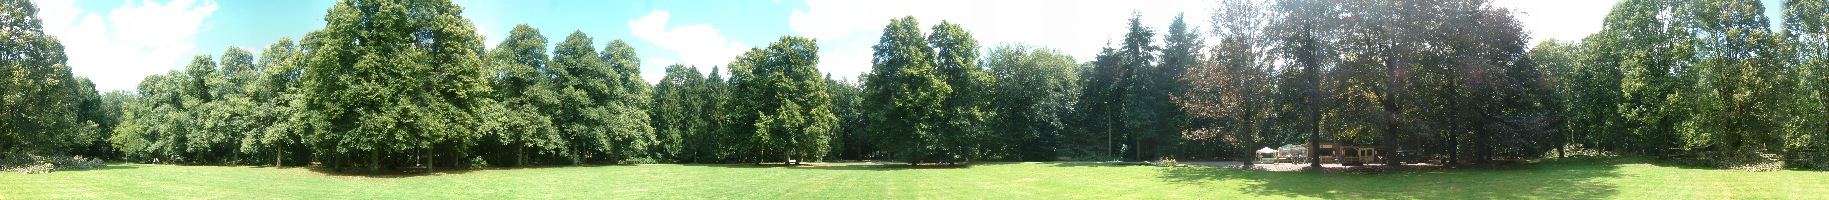 parkpano_s